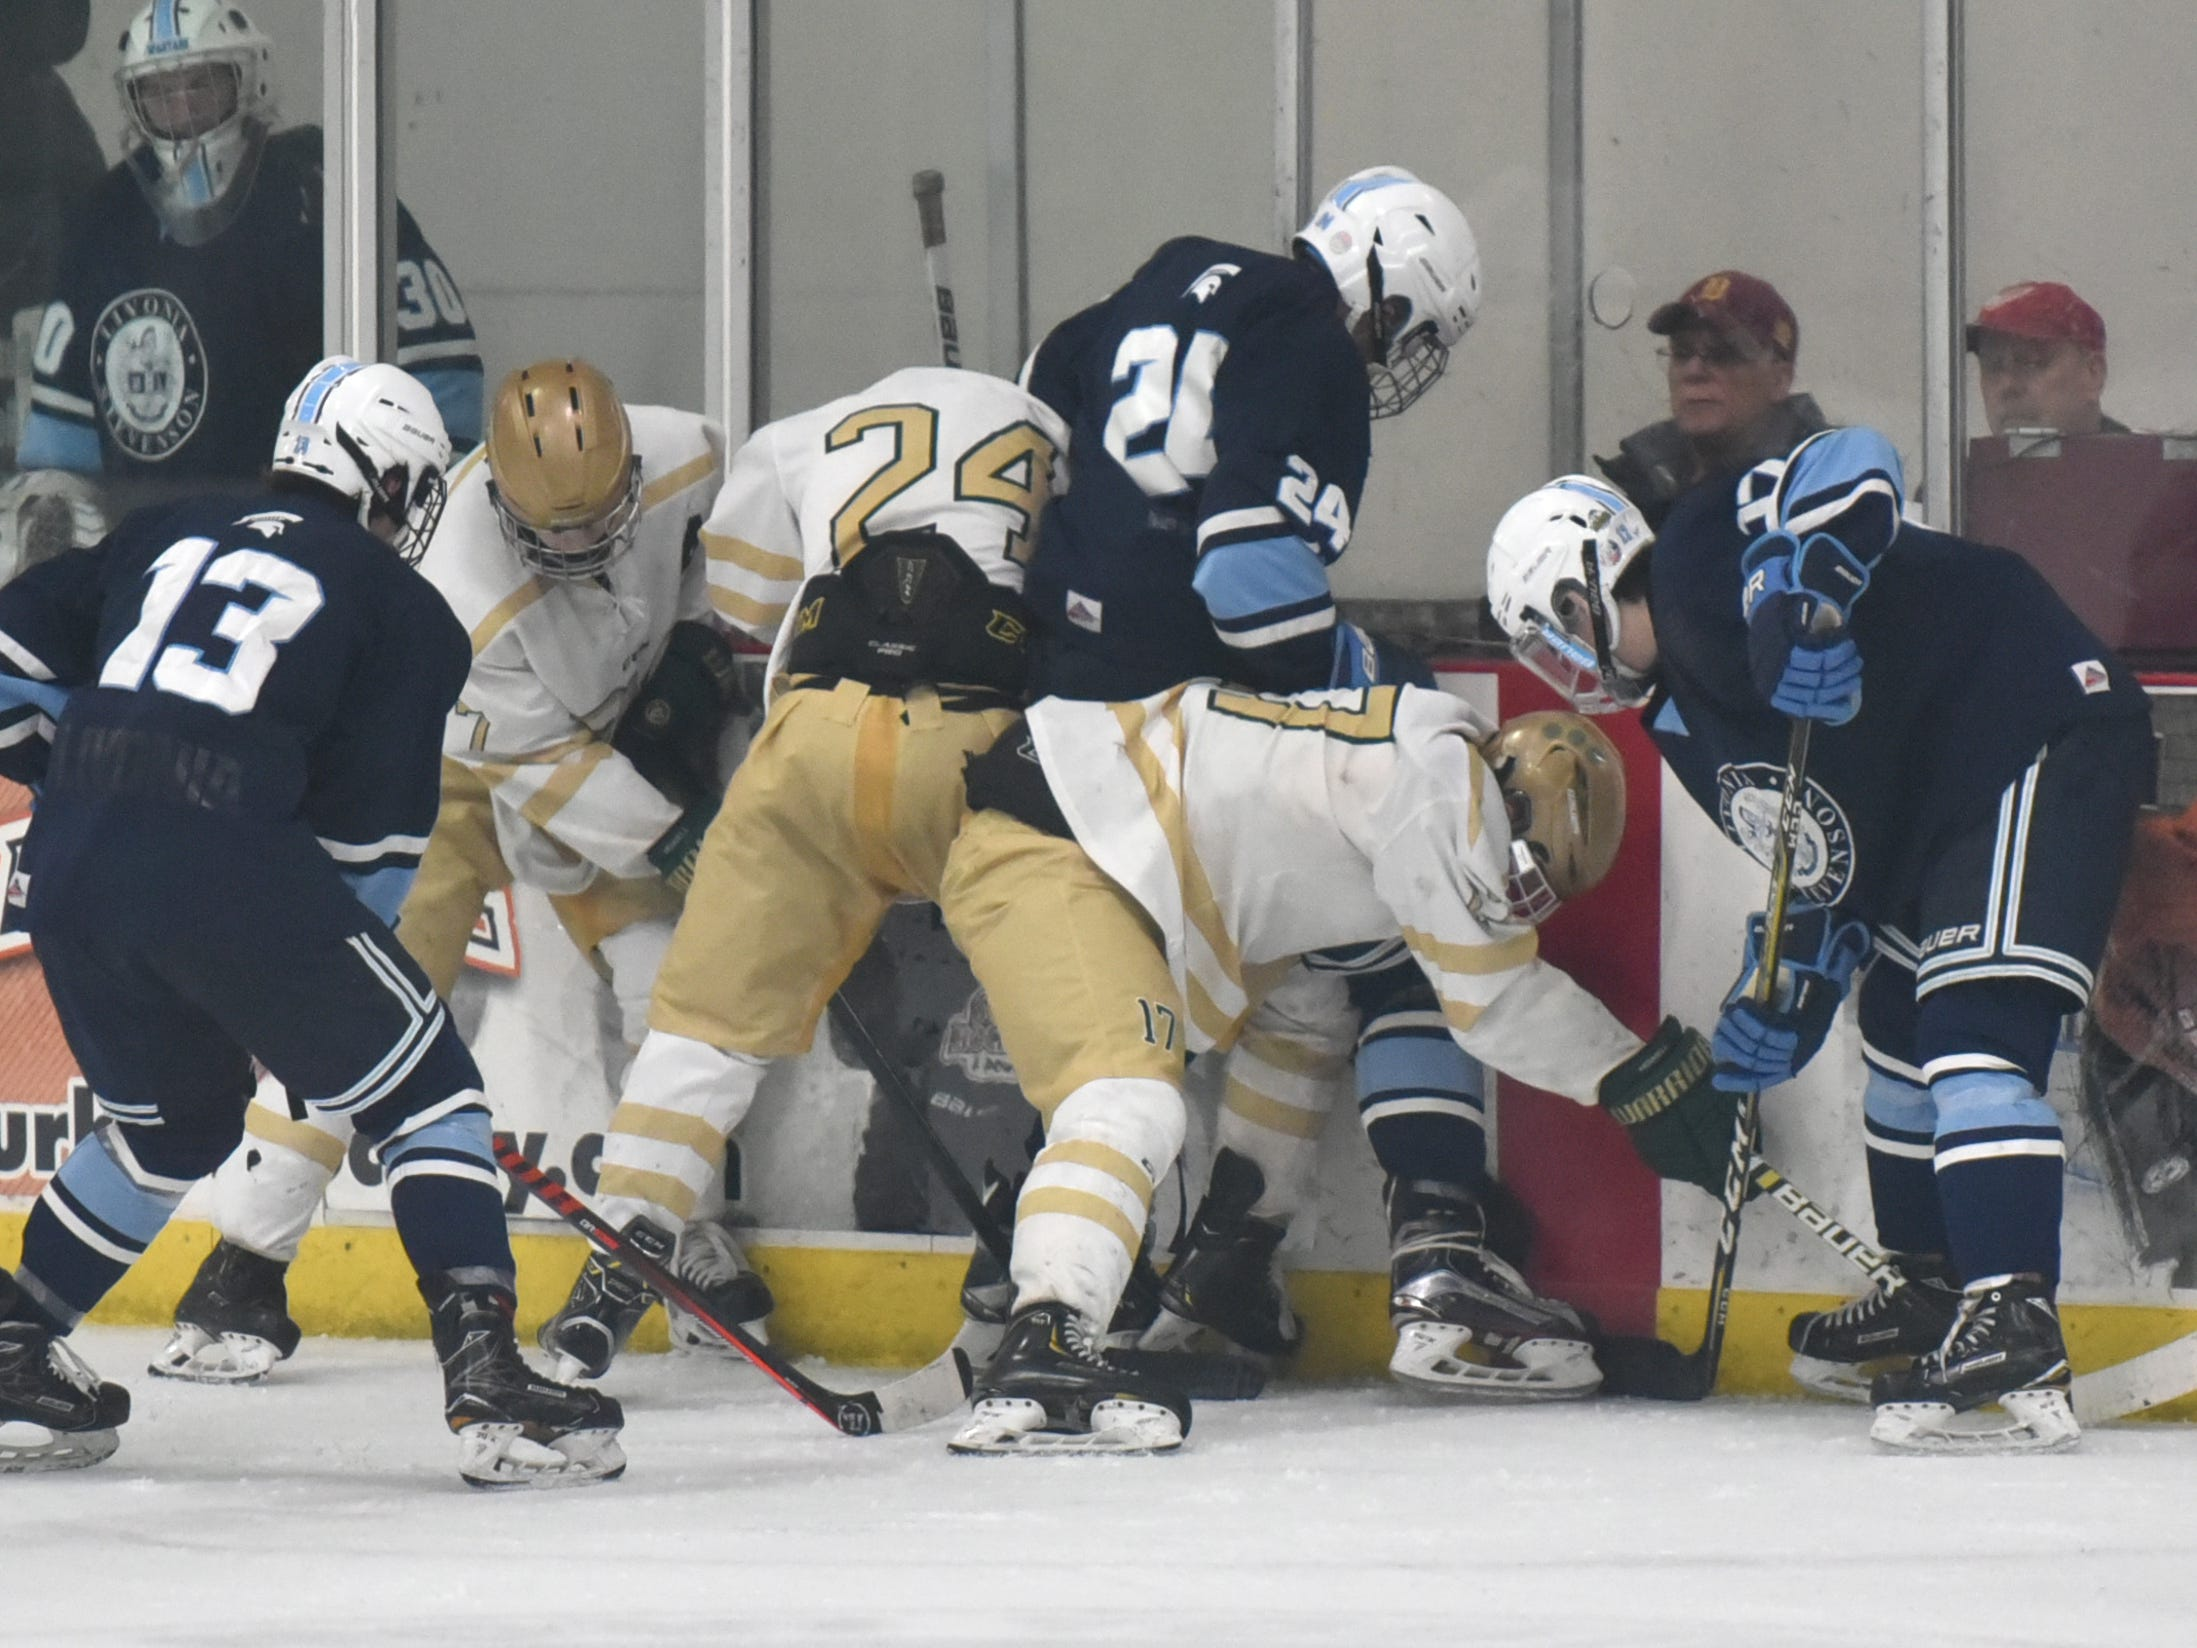 A large scrum for the puck involving six players took about thirty seconds to clear.